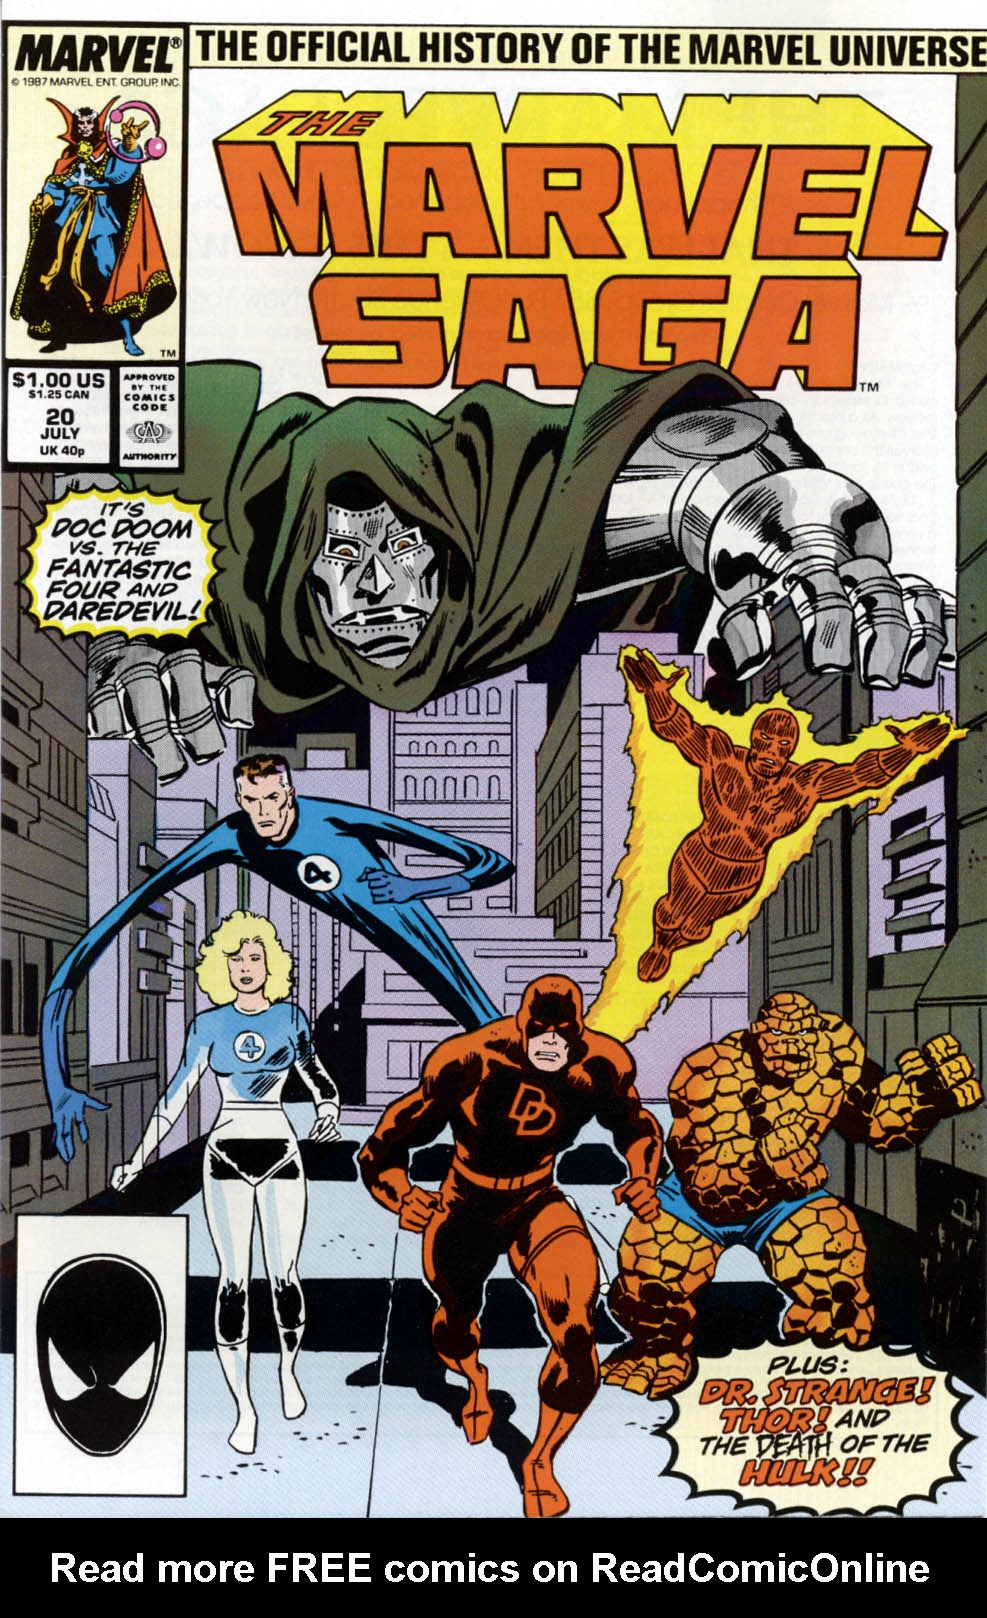 Marvel Saga: The Official History of the Marvel Universe 20 Page 1